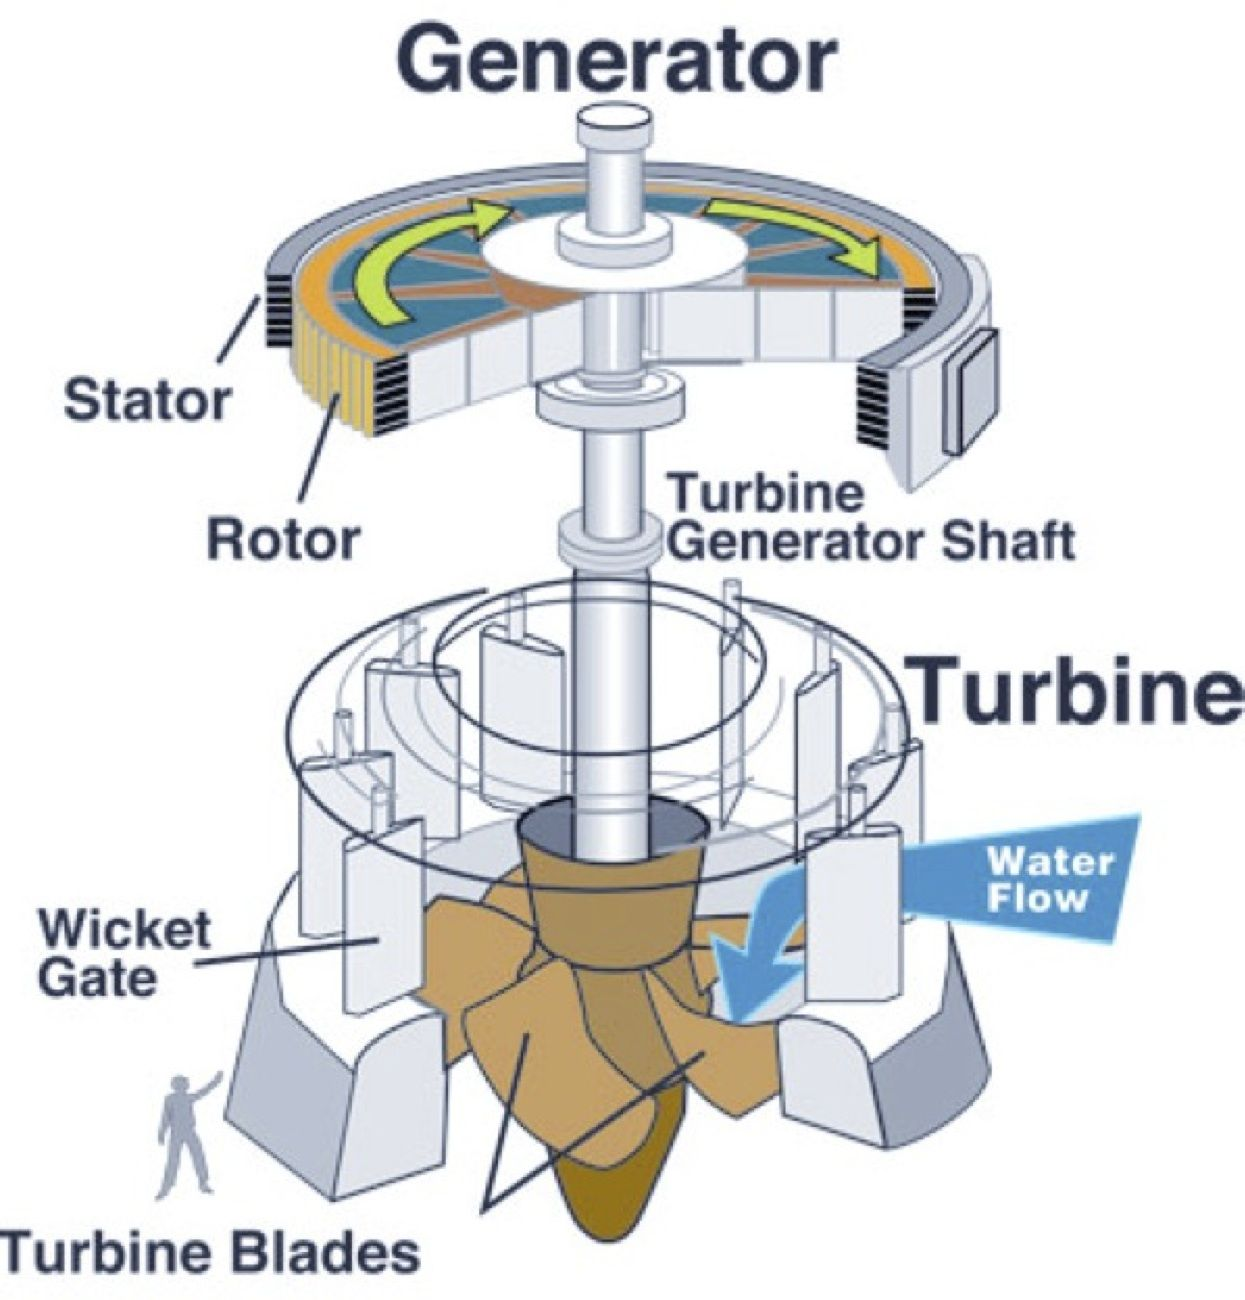 Pin By Electrical Technology On Pinterest Wind Power Turbine Diagram Hydro Dams For Large Scale Electricity Supply